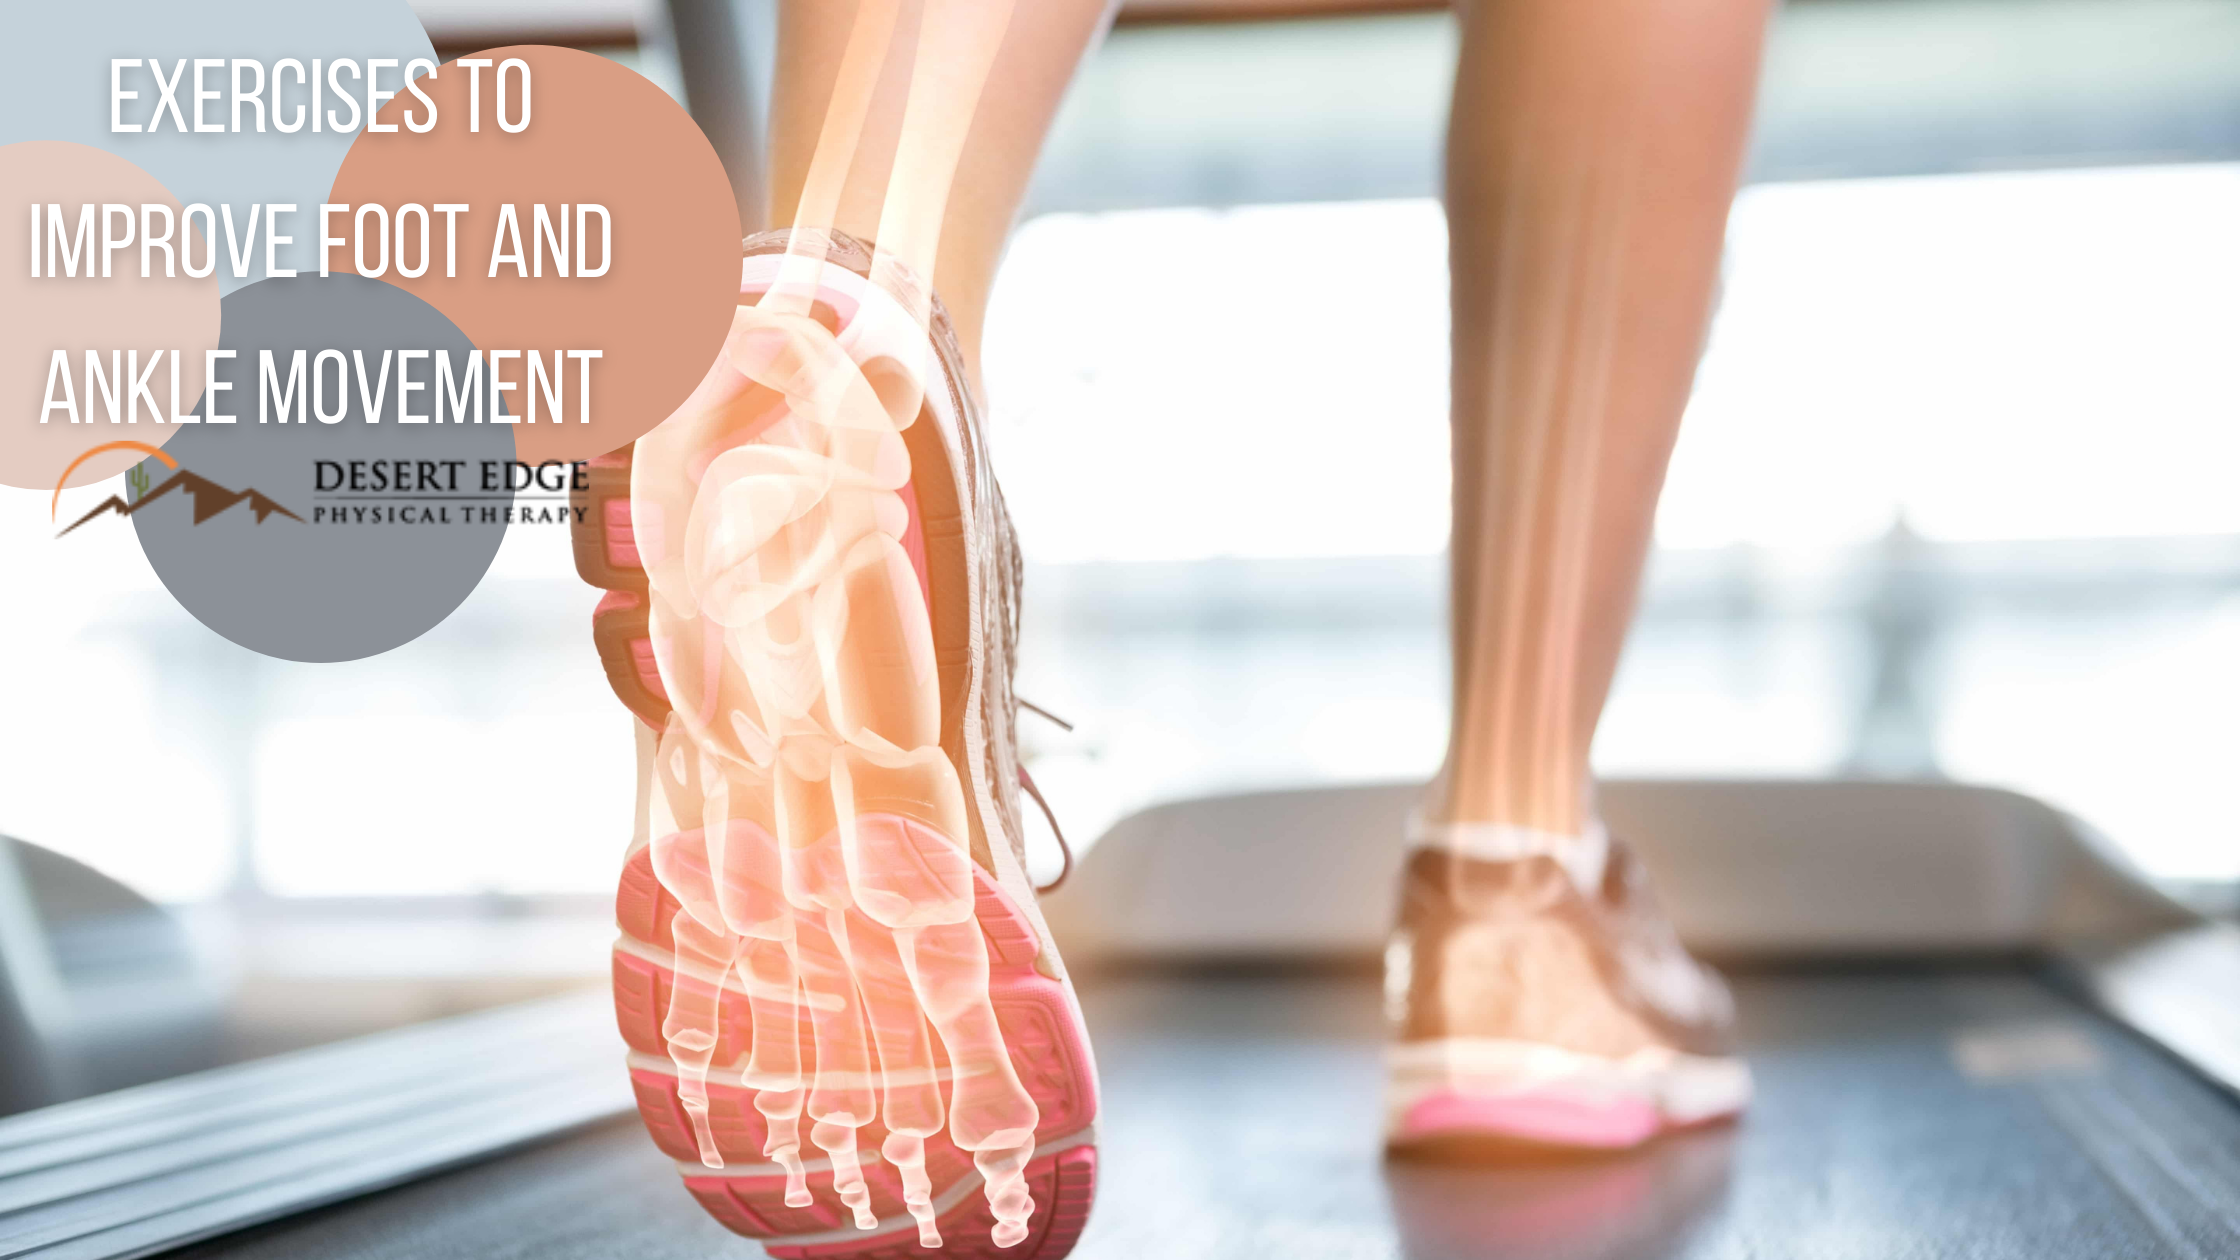 Exercises to Improve Foot and Ankle Movement